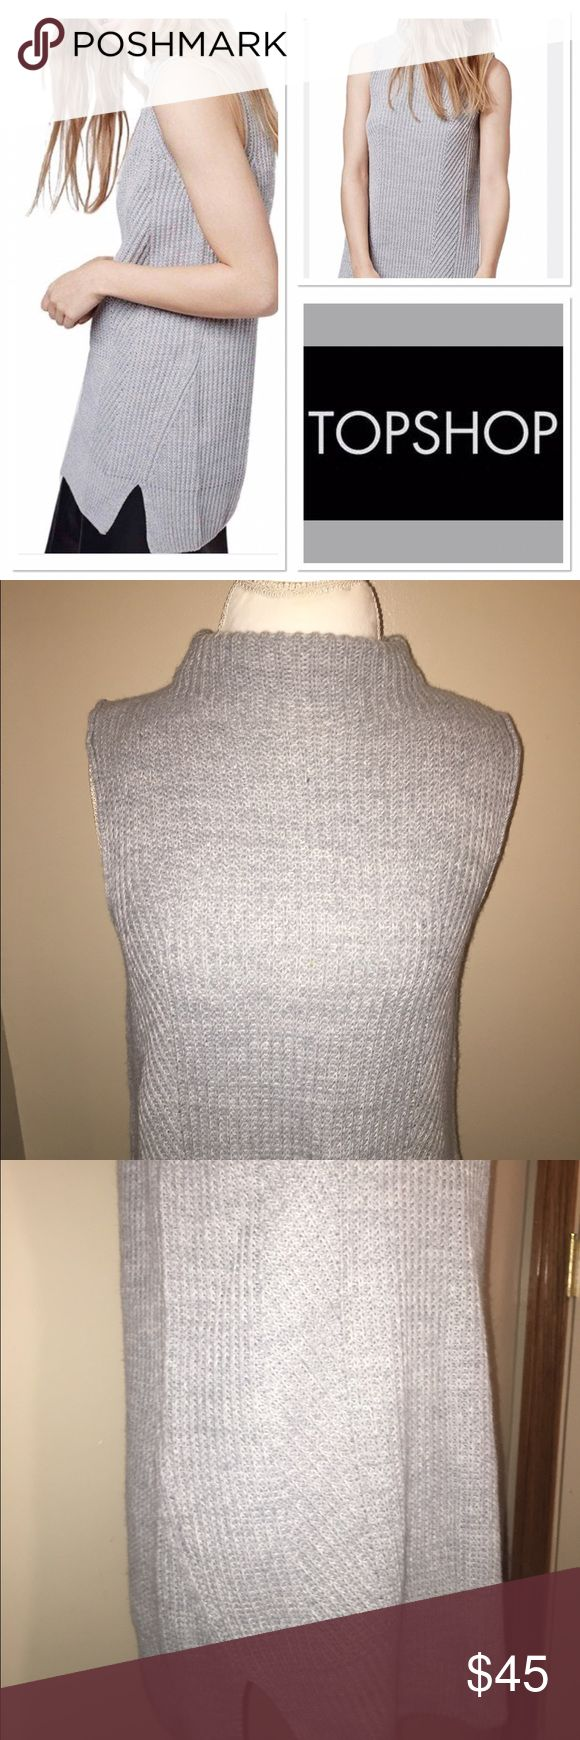 Topshop long gray sleeveless sweater Gorgeous knit strapless turtleneck by Topshop size 6 in excellent condition Topshop Tops